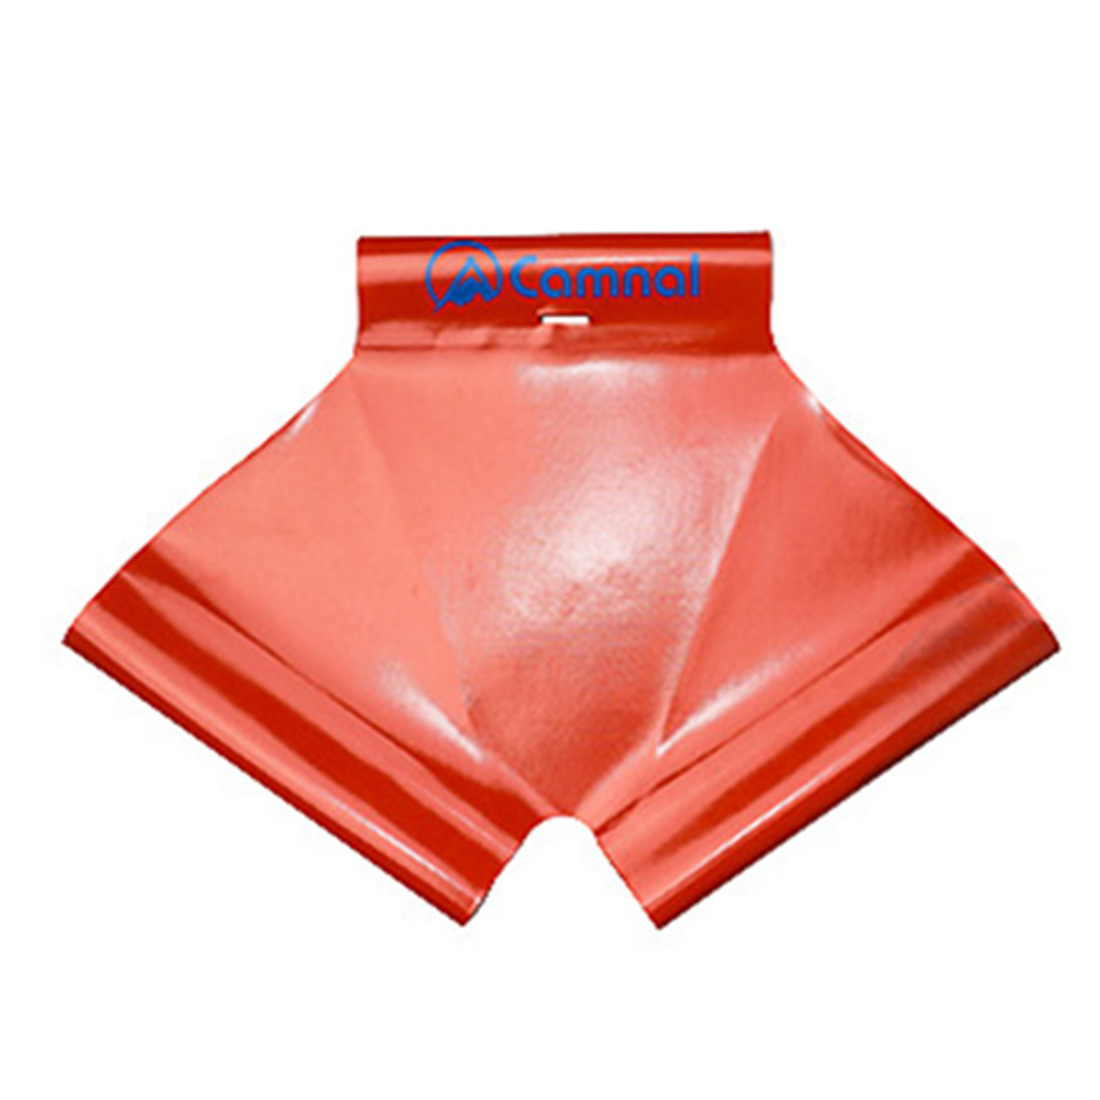 Covers Butt Seat Harness Wear-resisting Rescue Sports Rappelling Protective